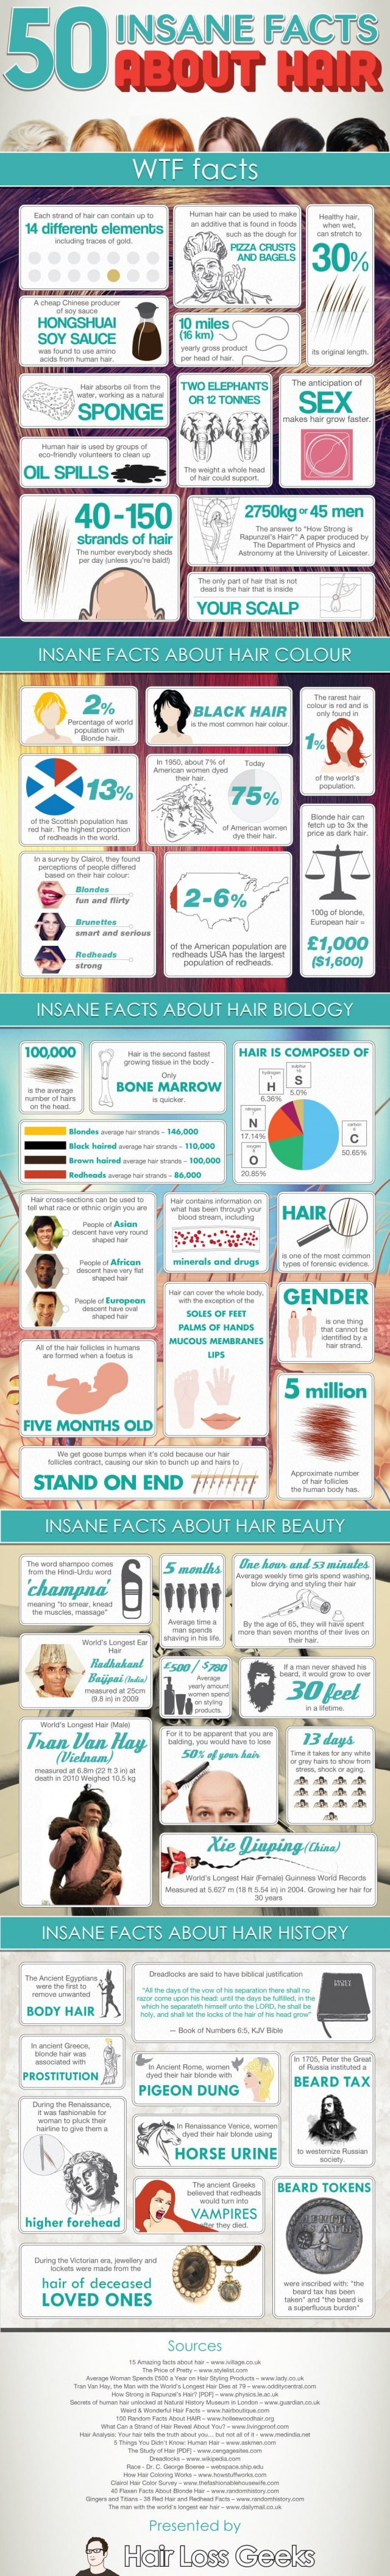 Take a look at these amusing facts related to hair. Even if you're bald you'll find them interesting!